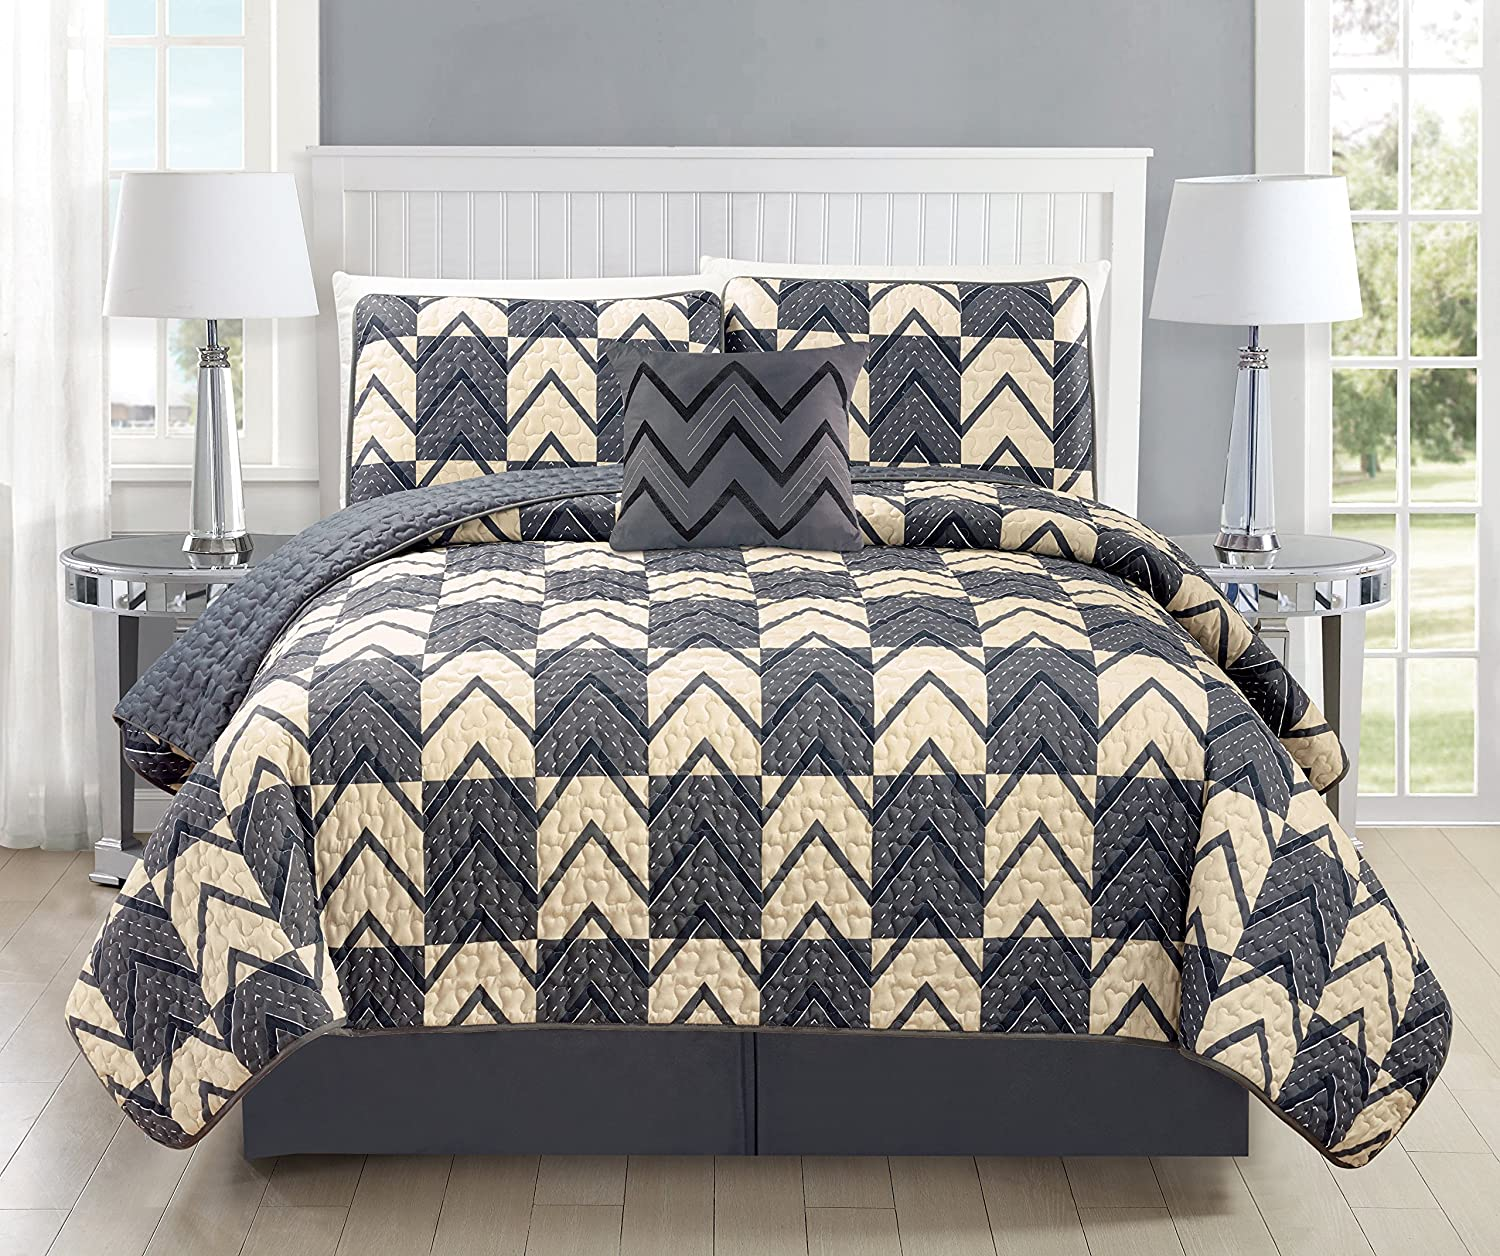 Mk Collection 3pc Bedspread coverlet quilted Modern Taupe Dark Grey/Charcoal Over Size New #184 Full/Queen COMIN18JU051341